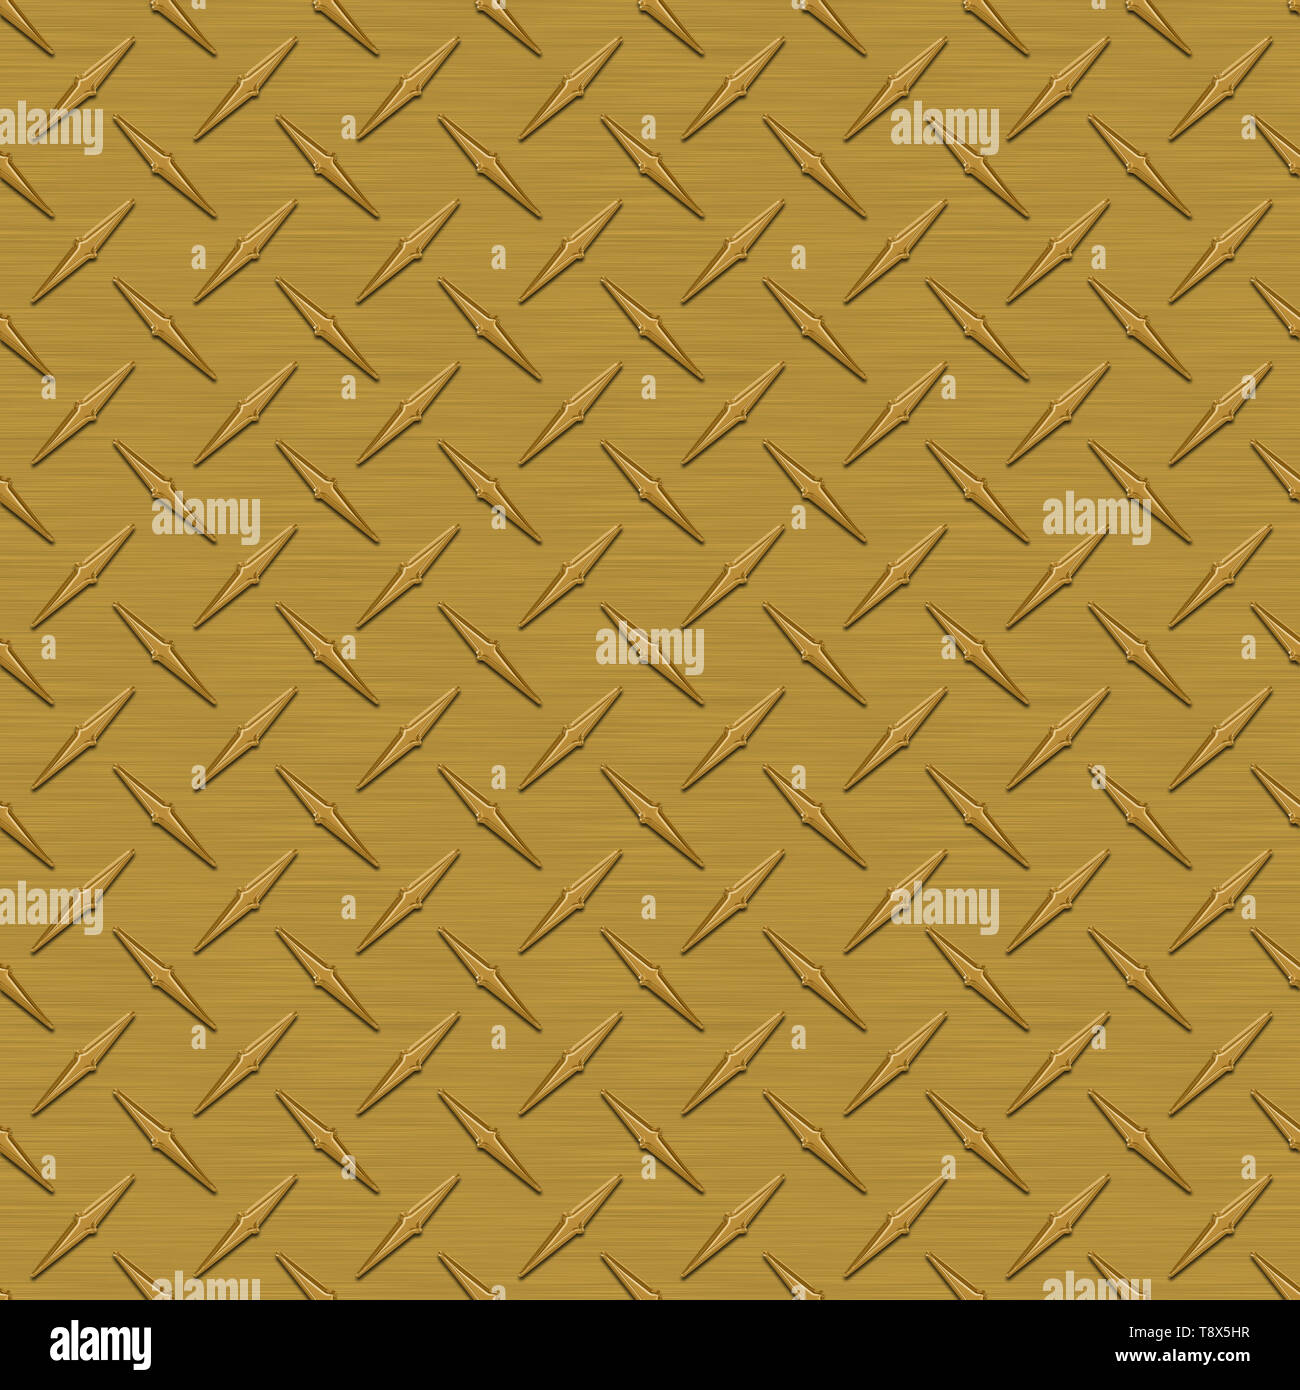 Dark Gold Diamond Plate Metal Seamless Texture Tile - Stock Image